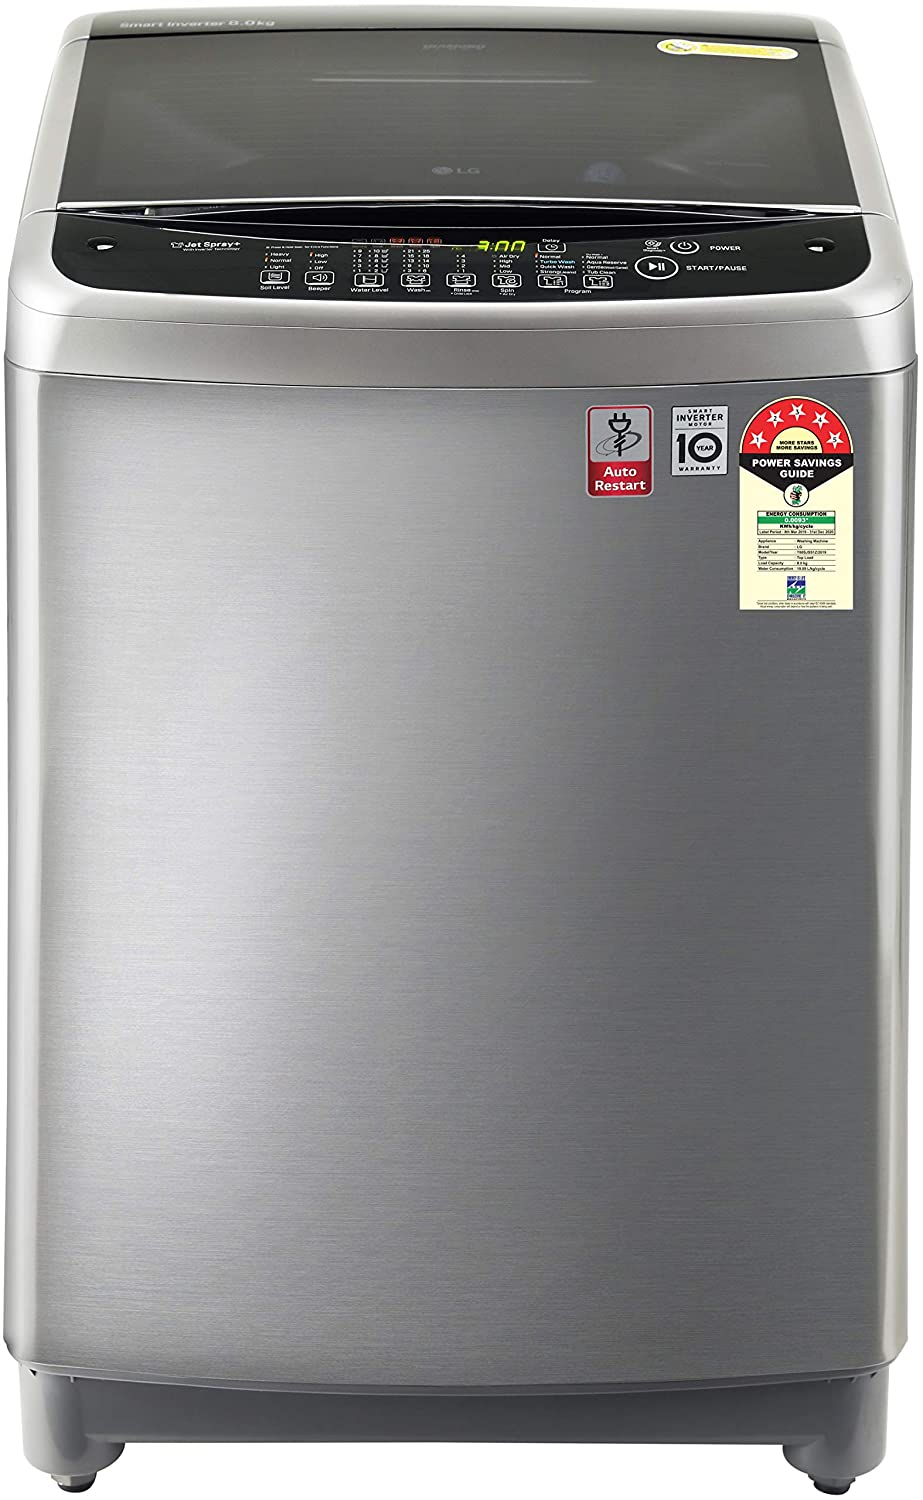 LG 8.0 Kg 5 Star Smart Inverter Fully-Automatic Top Loading Washing Machine